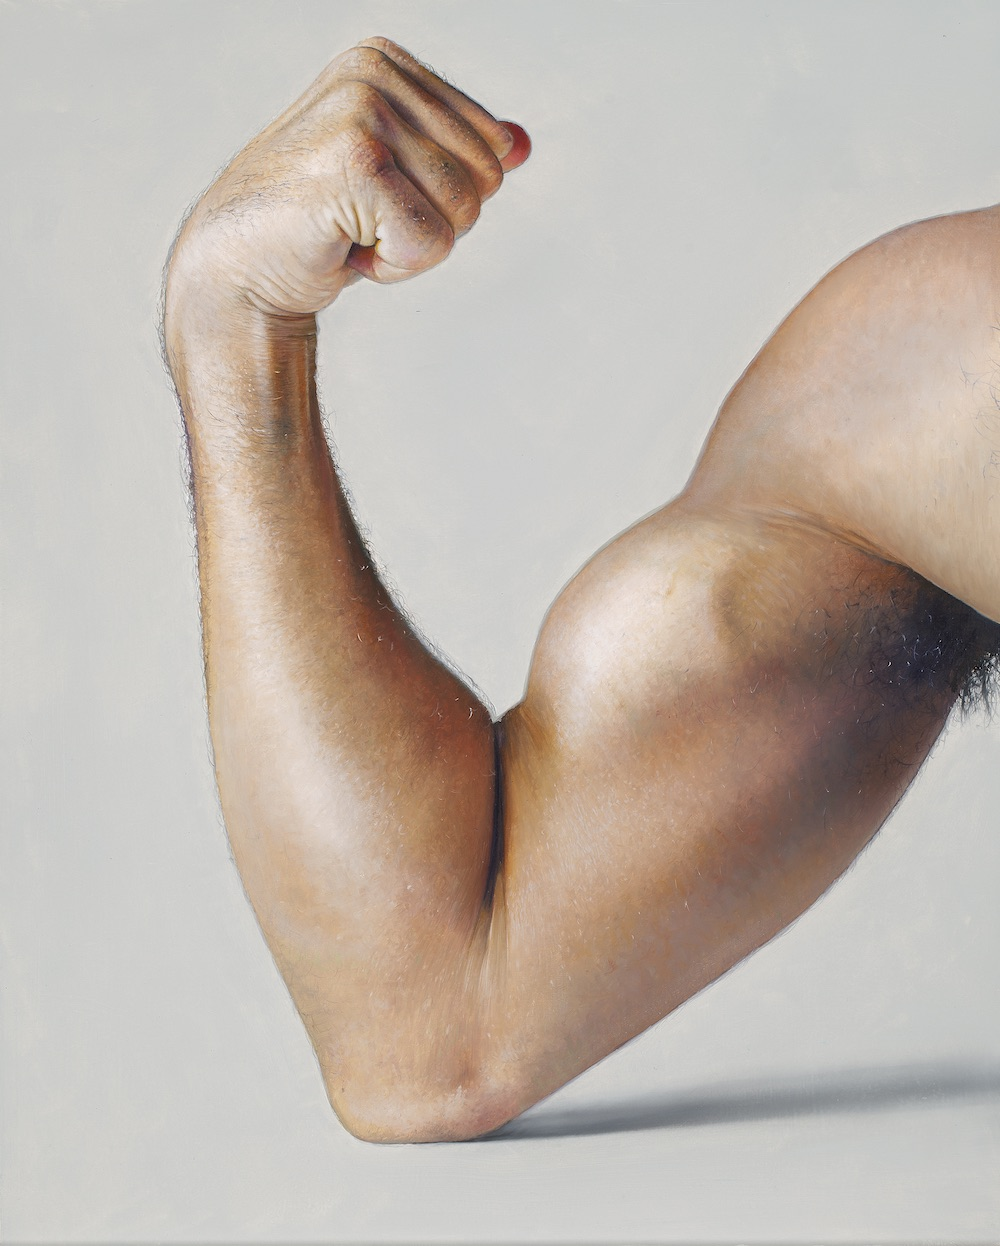 Michel Zavros, The Artist Flexes His Muscles, 2015. Private collection, courtesy the artist and Starkwhite, Auckland